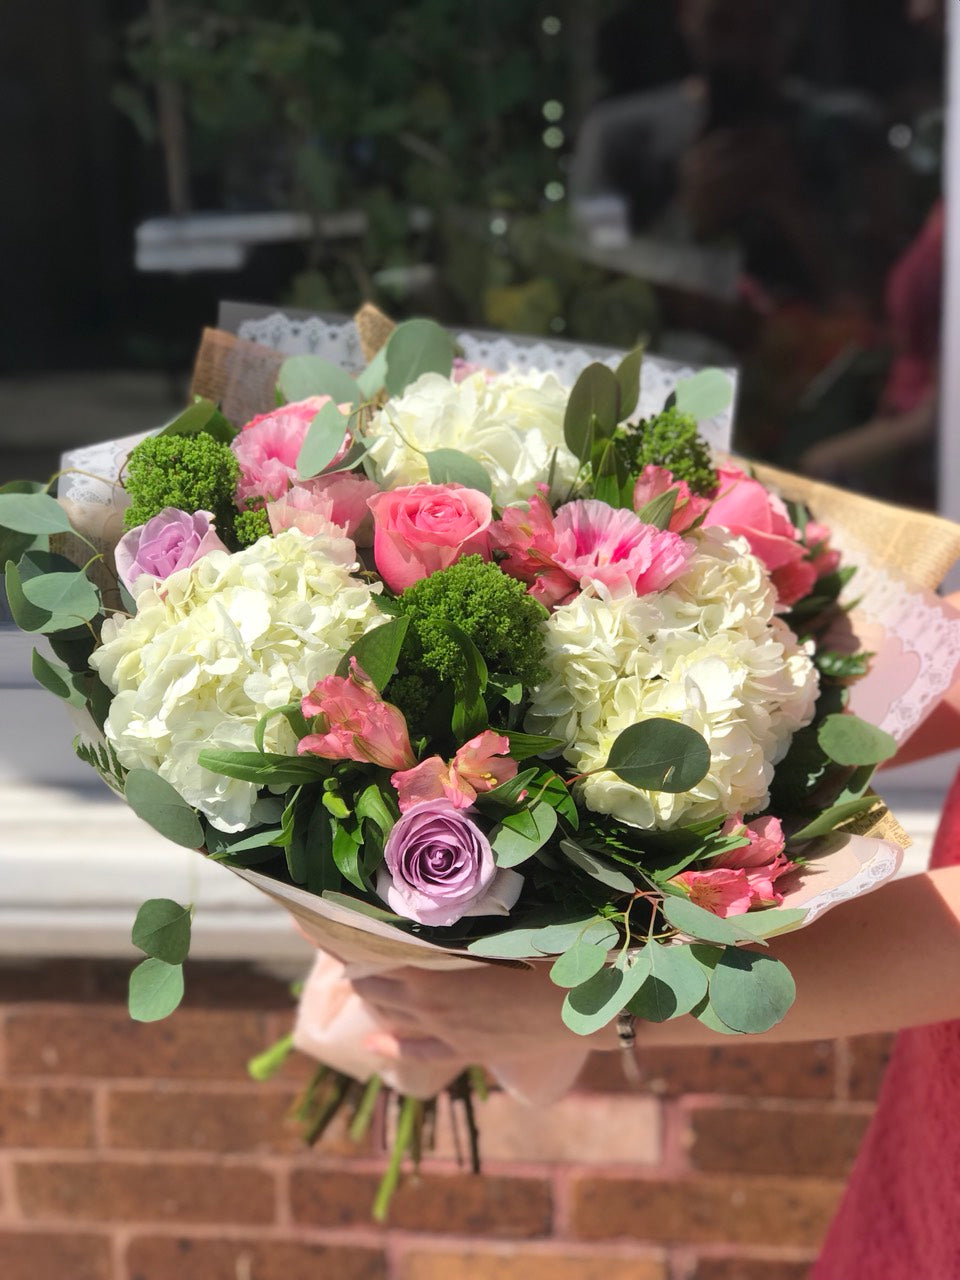 In the prettiest shade of whisper-soft pink, this breathtaking bouquet proclaims your affection in a most powerful way!    This delicate arrangement includes pink alstroemeria, white hydrangea, leatherleaf fern, and eucalyptus leaf.